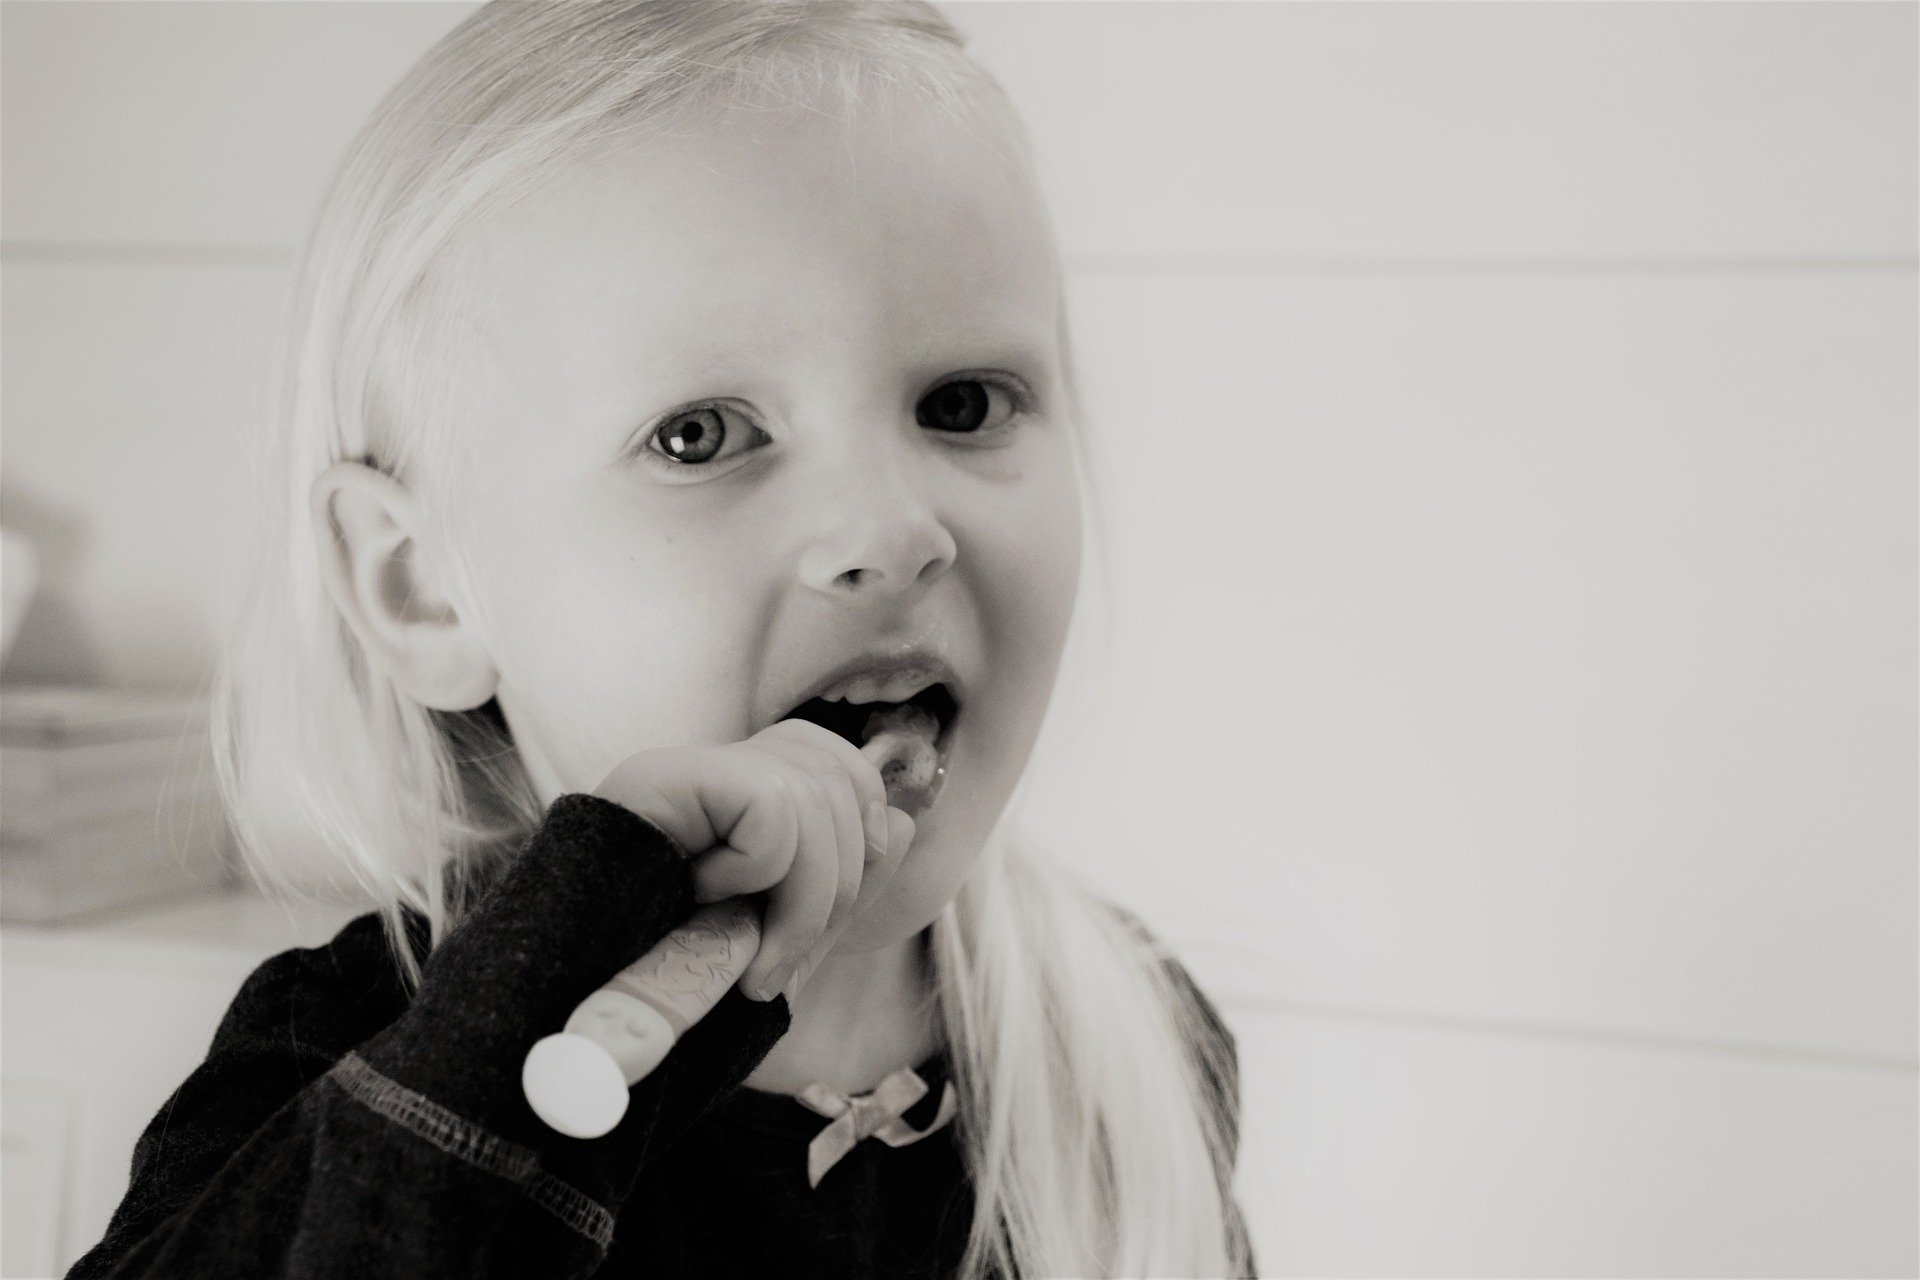 how to get toddler to brush teeth without struggle